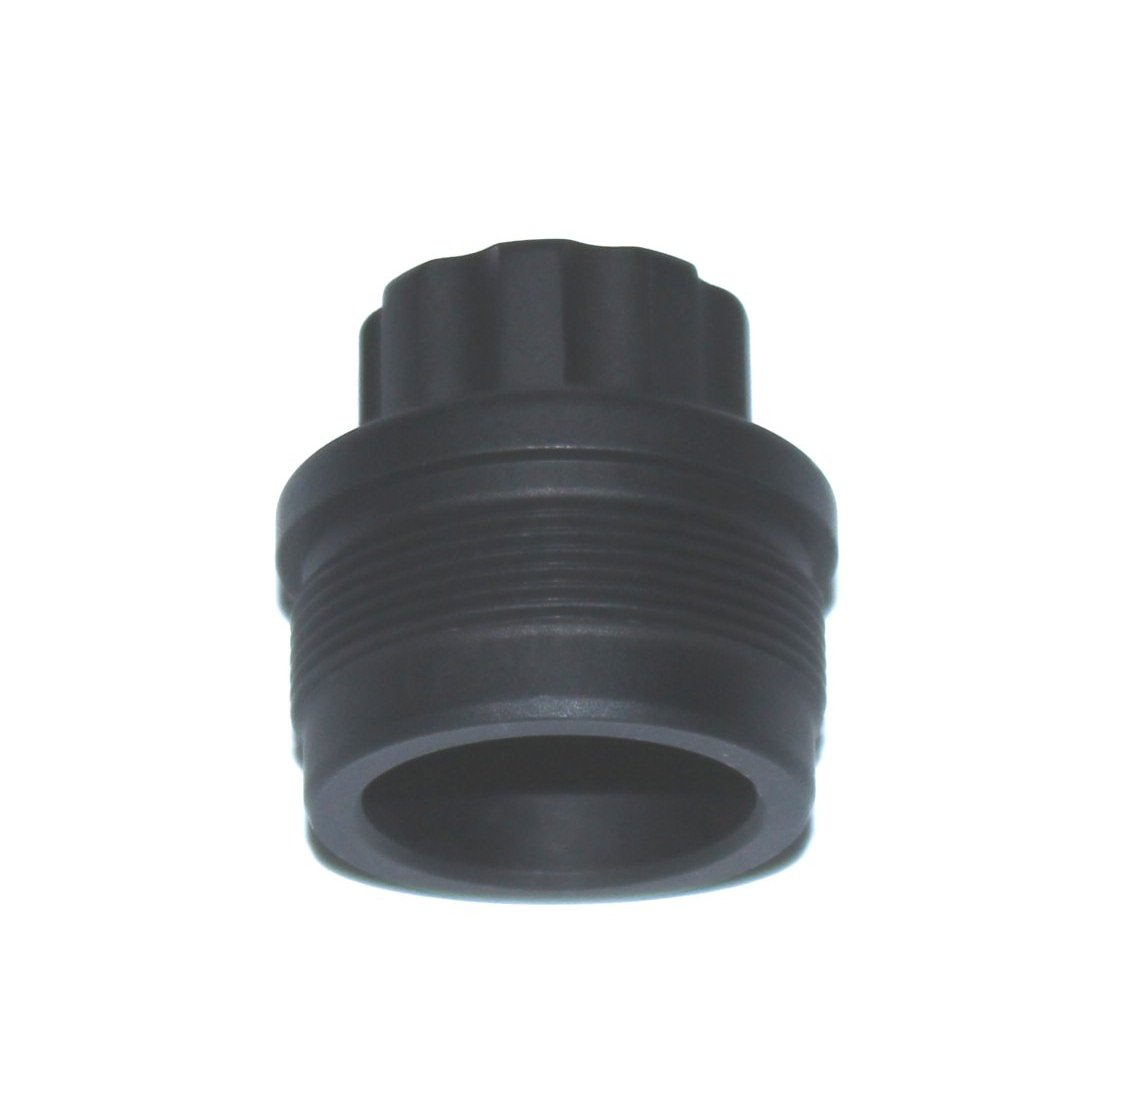 5/8 - 24 Fixed Barrel Adapter